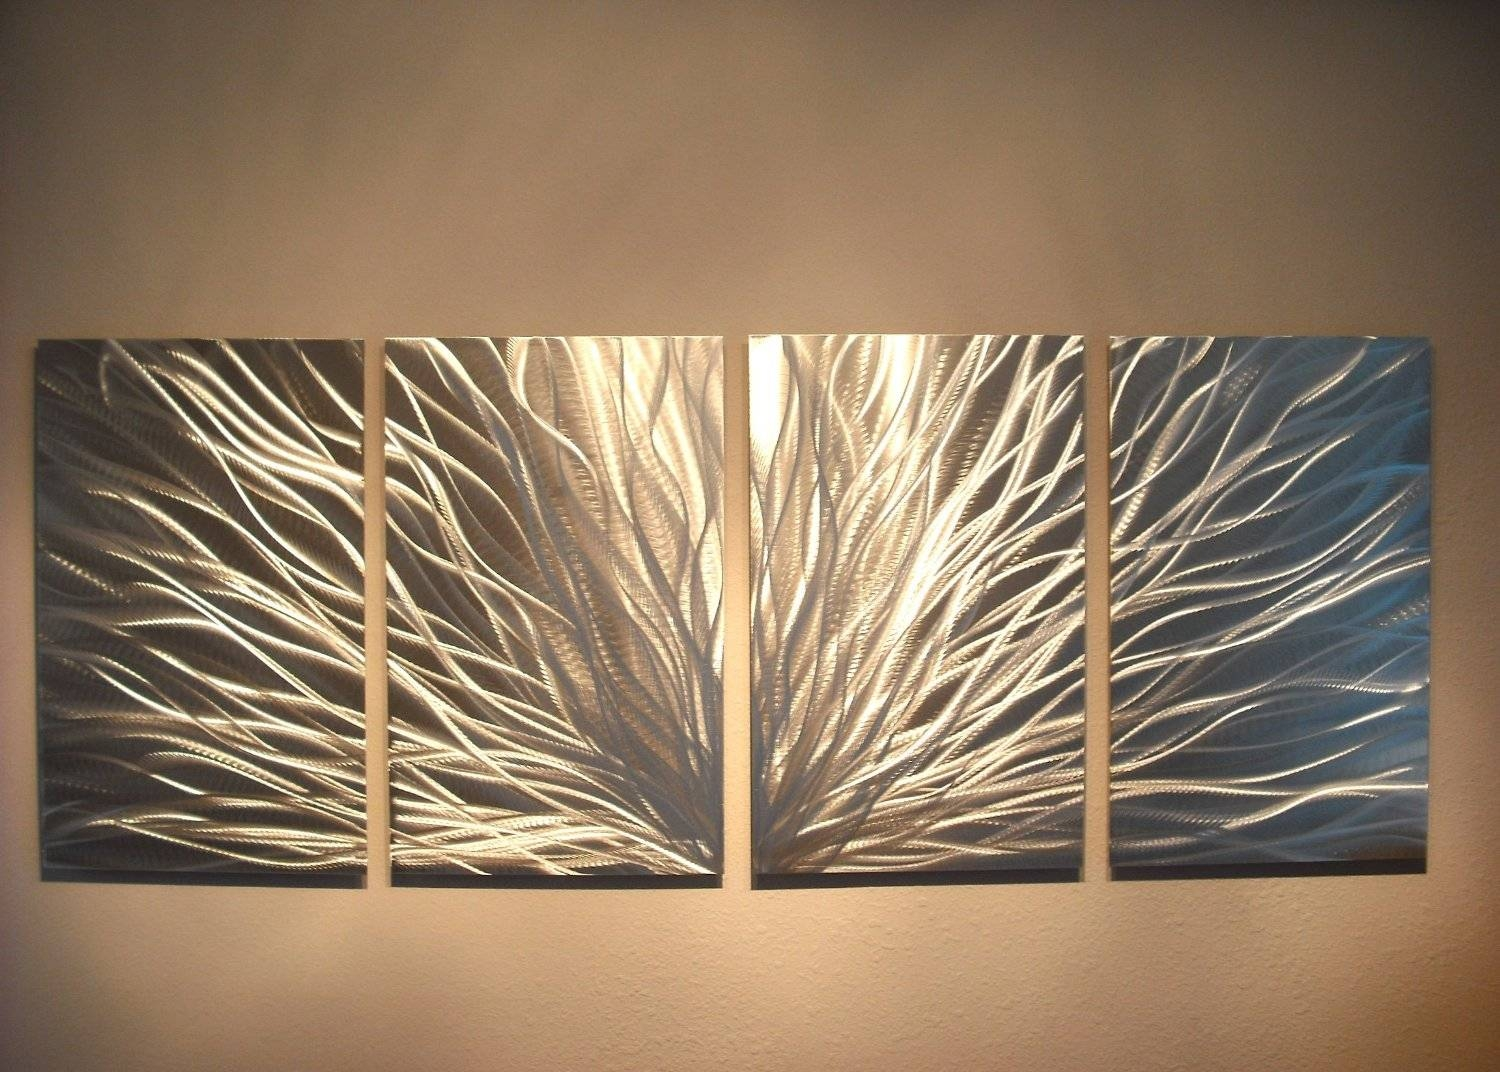 Wall Art Designs: Modern Abstract Wall Art Brown Cheap Pertaining To Most Recent Abstract Wall Art (View 15 of 15)